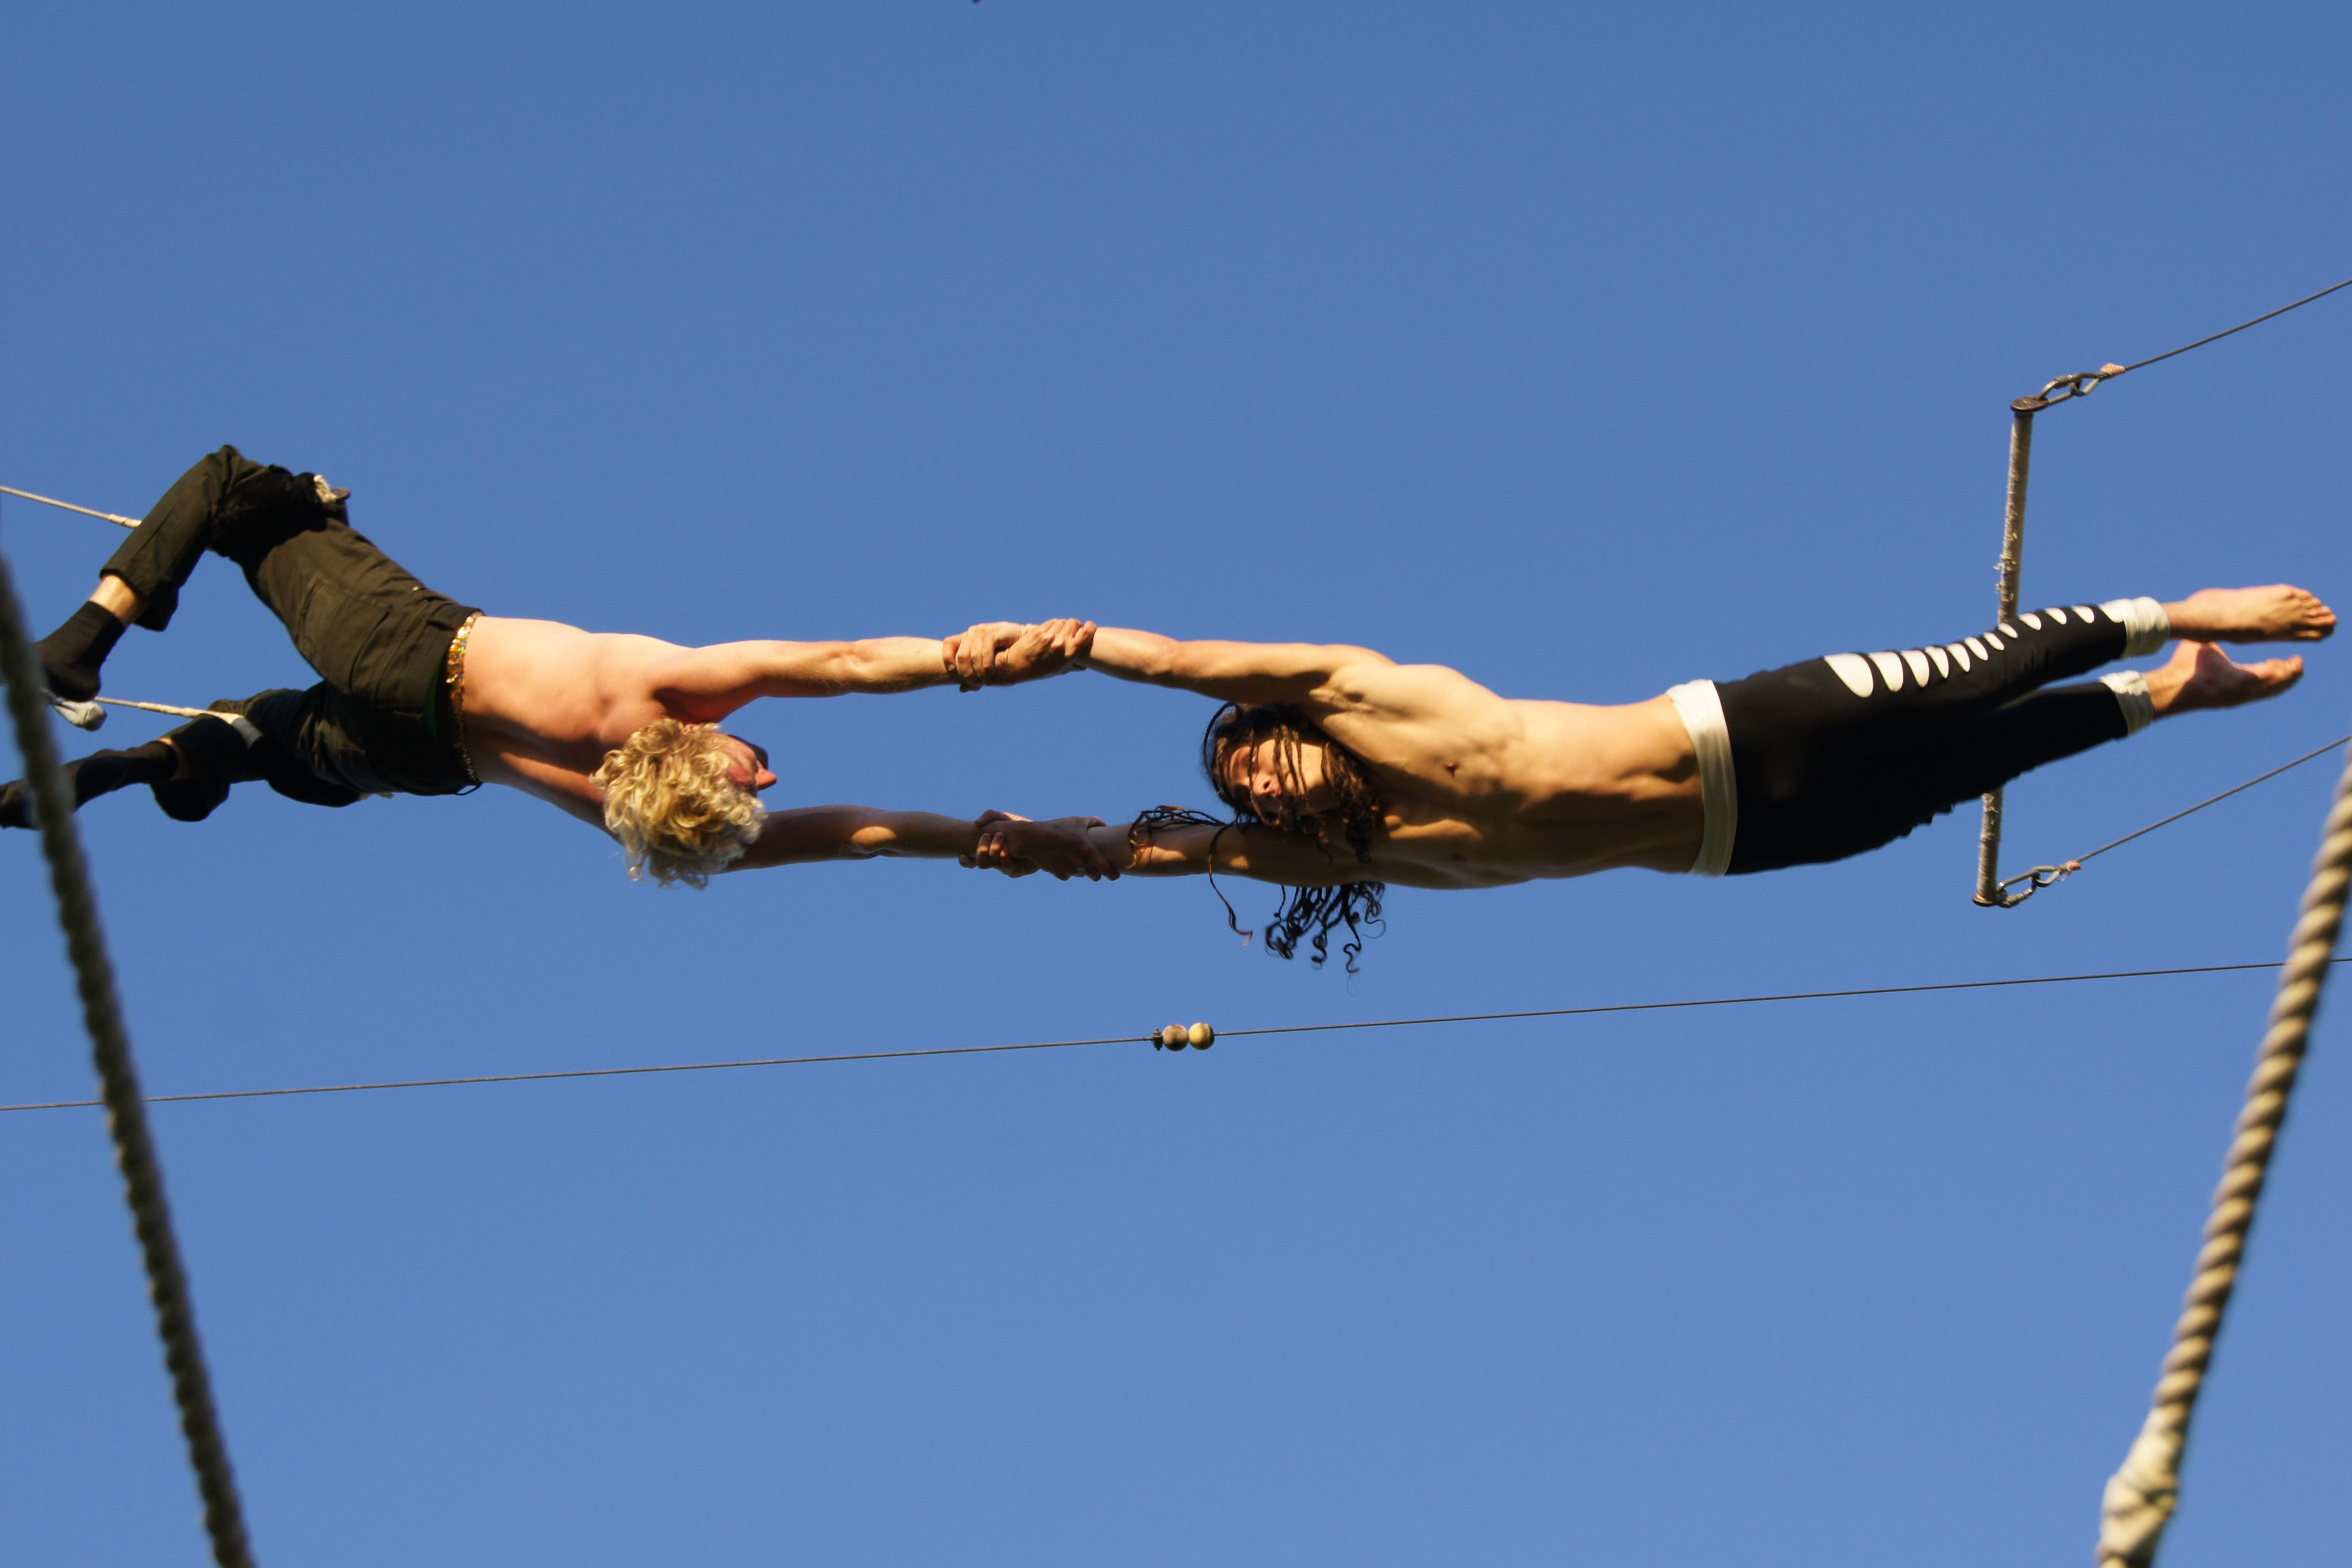 What better way to see some of London's most beautiful scenery than a flying trapeze, offering flyers a view of the city from the air?